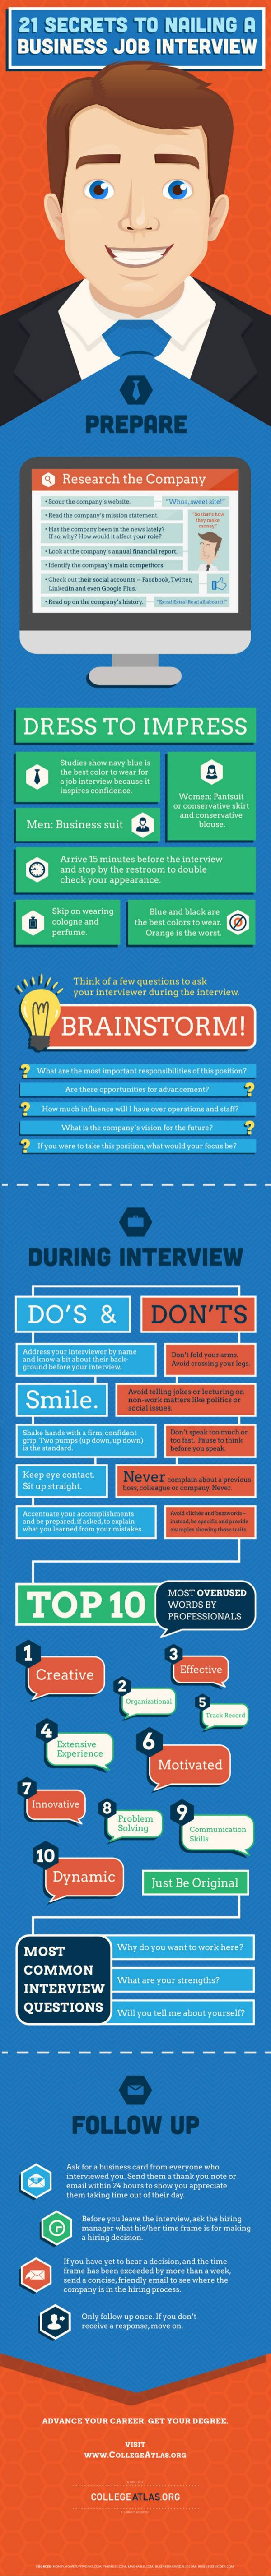 21 Secrets to Nailing a Business Job interview